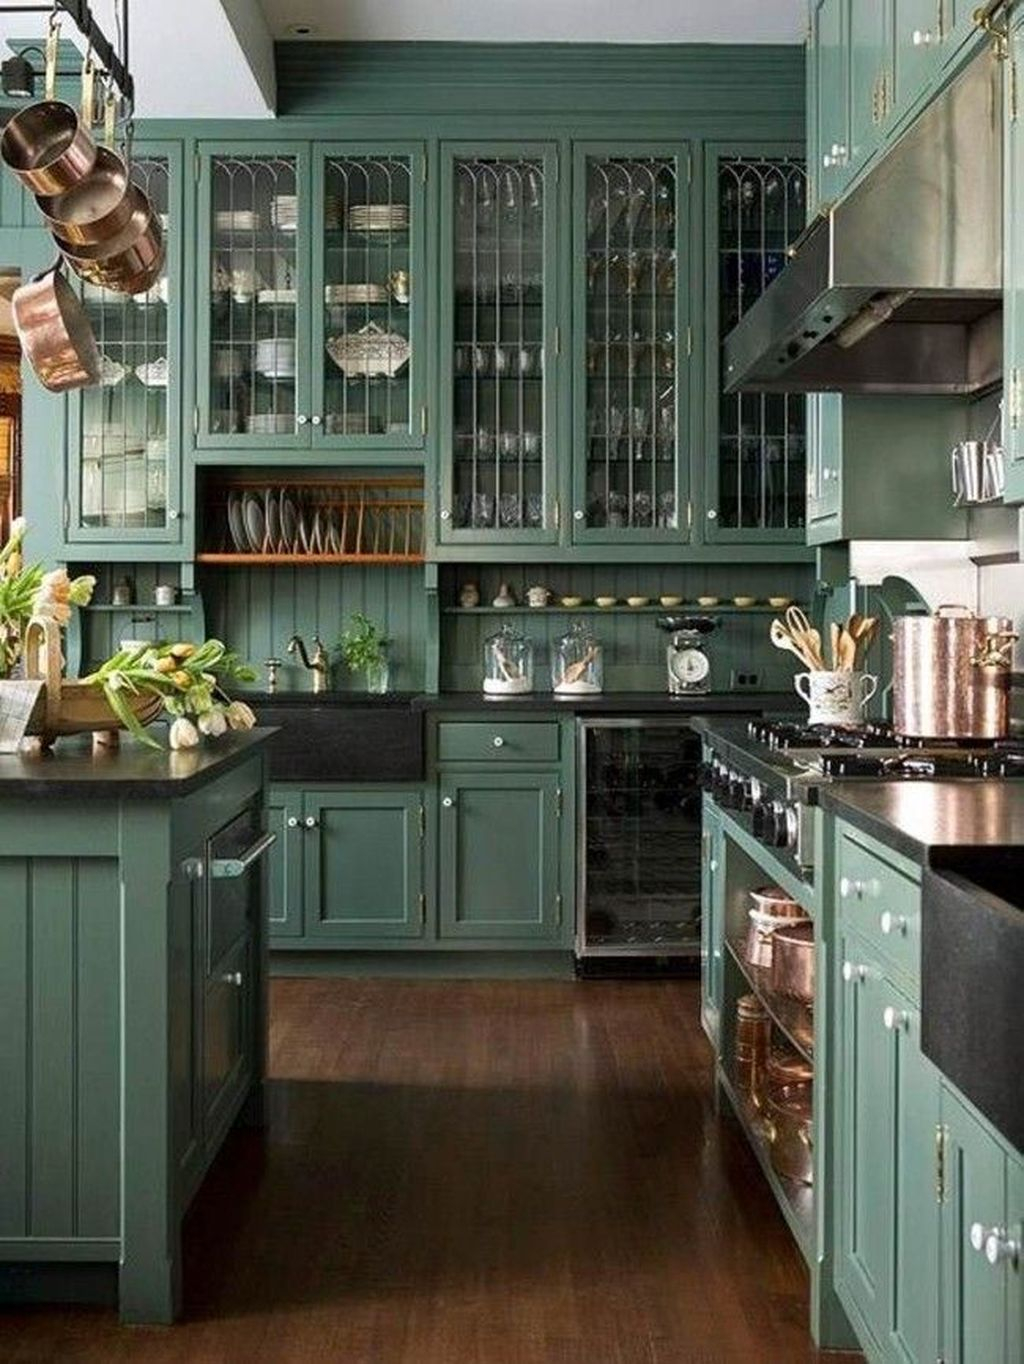 Impressive Gray And Turquoise Color Scheme Ideas For Your Kitchen37